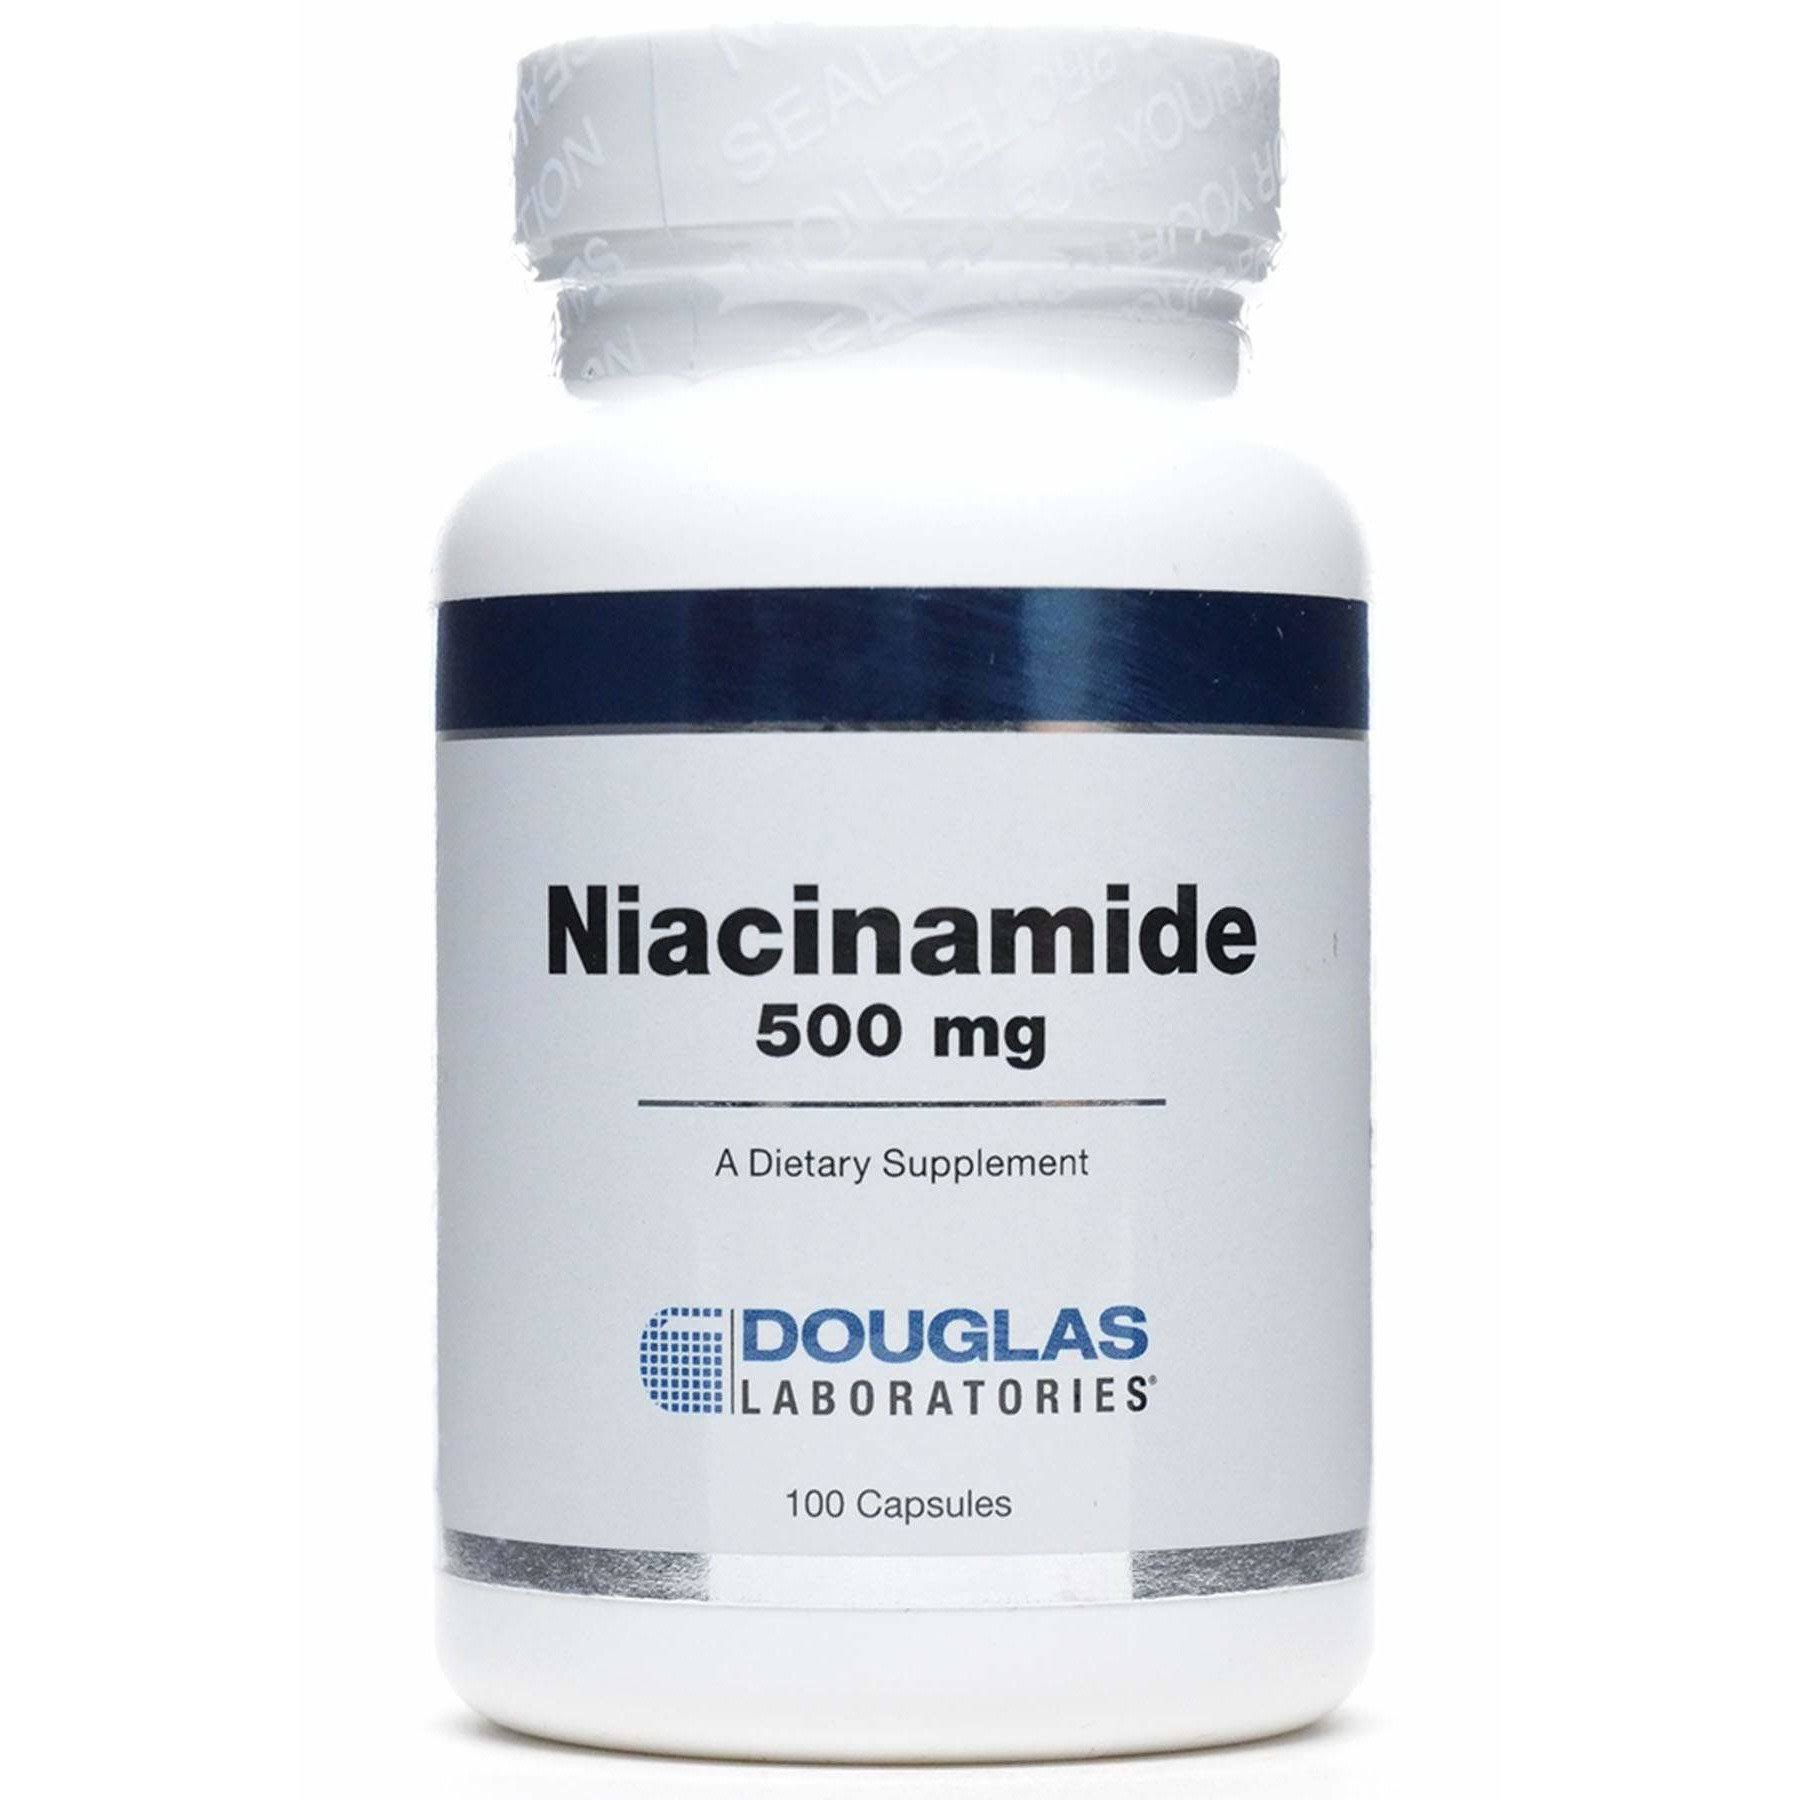 Douglas Laboratories Niacinamide Dietary Supplement - 100 Capsules